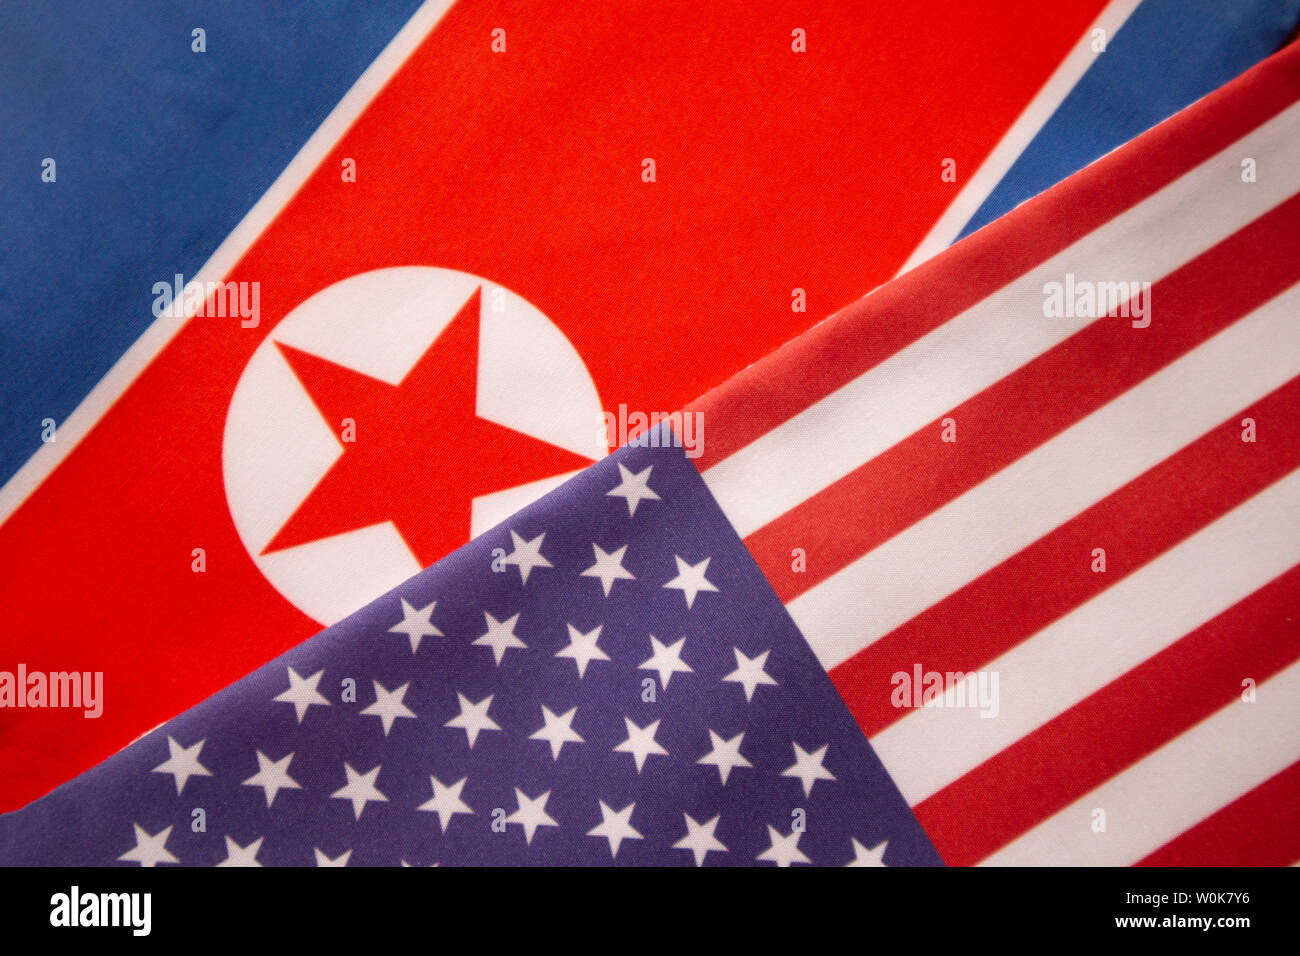 Concept of Bilateral relationship between two countries showing with two flags: United States of America and North Korea - Stock Image